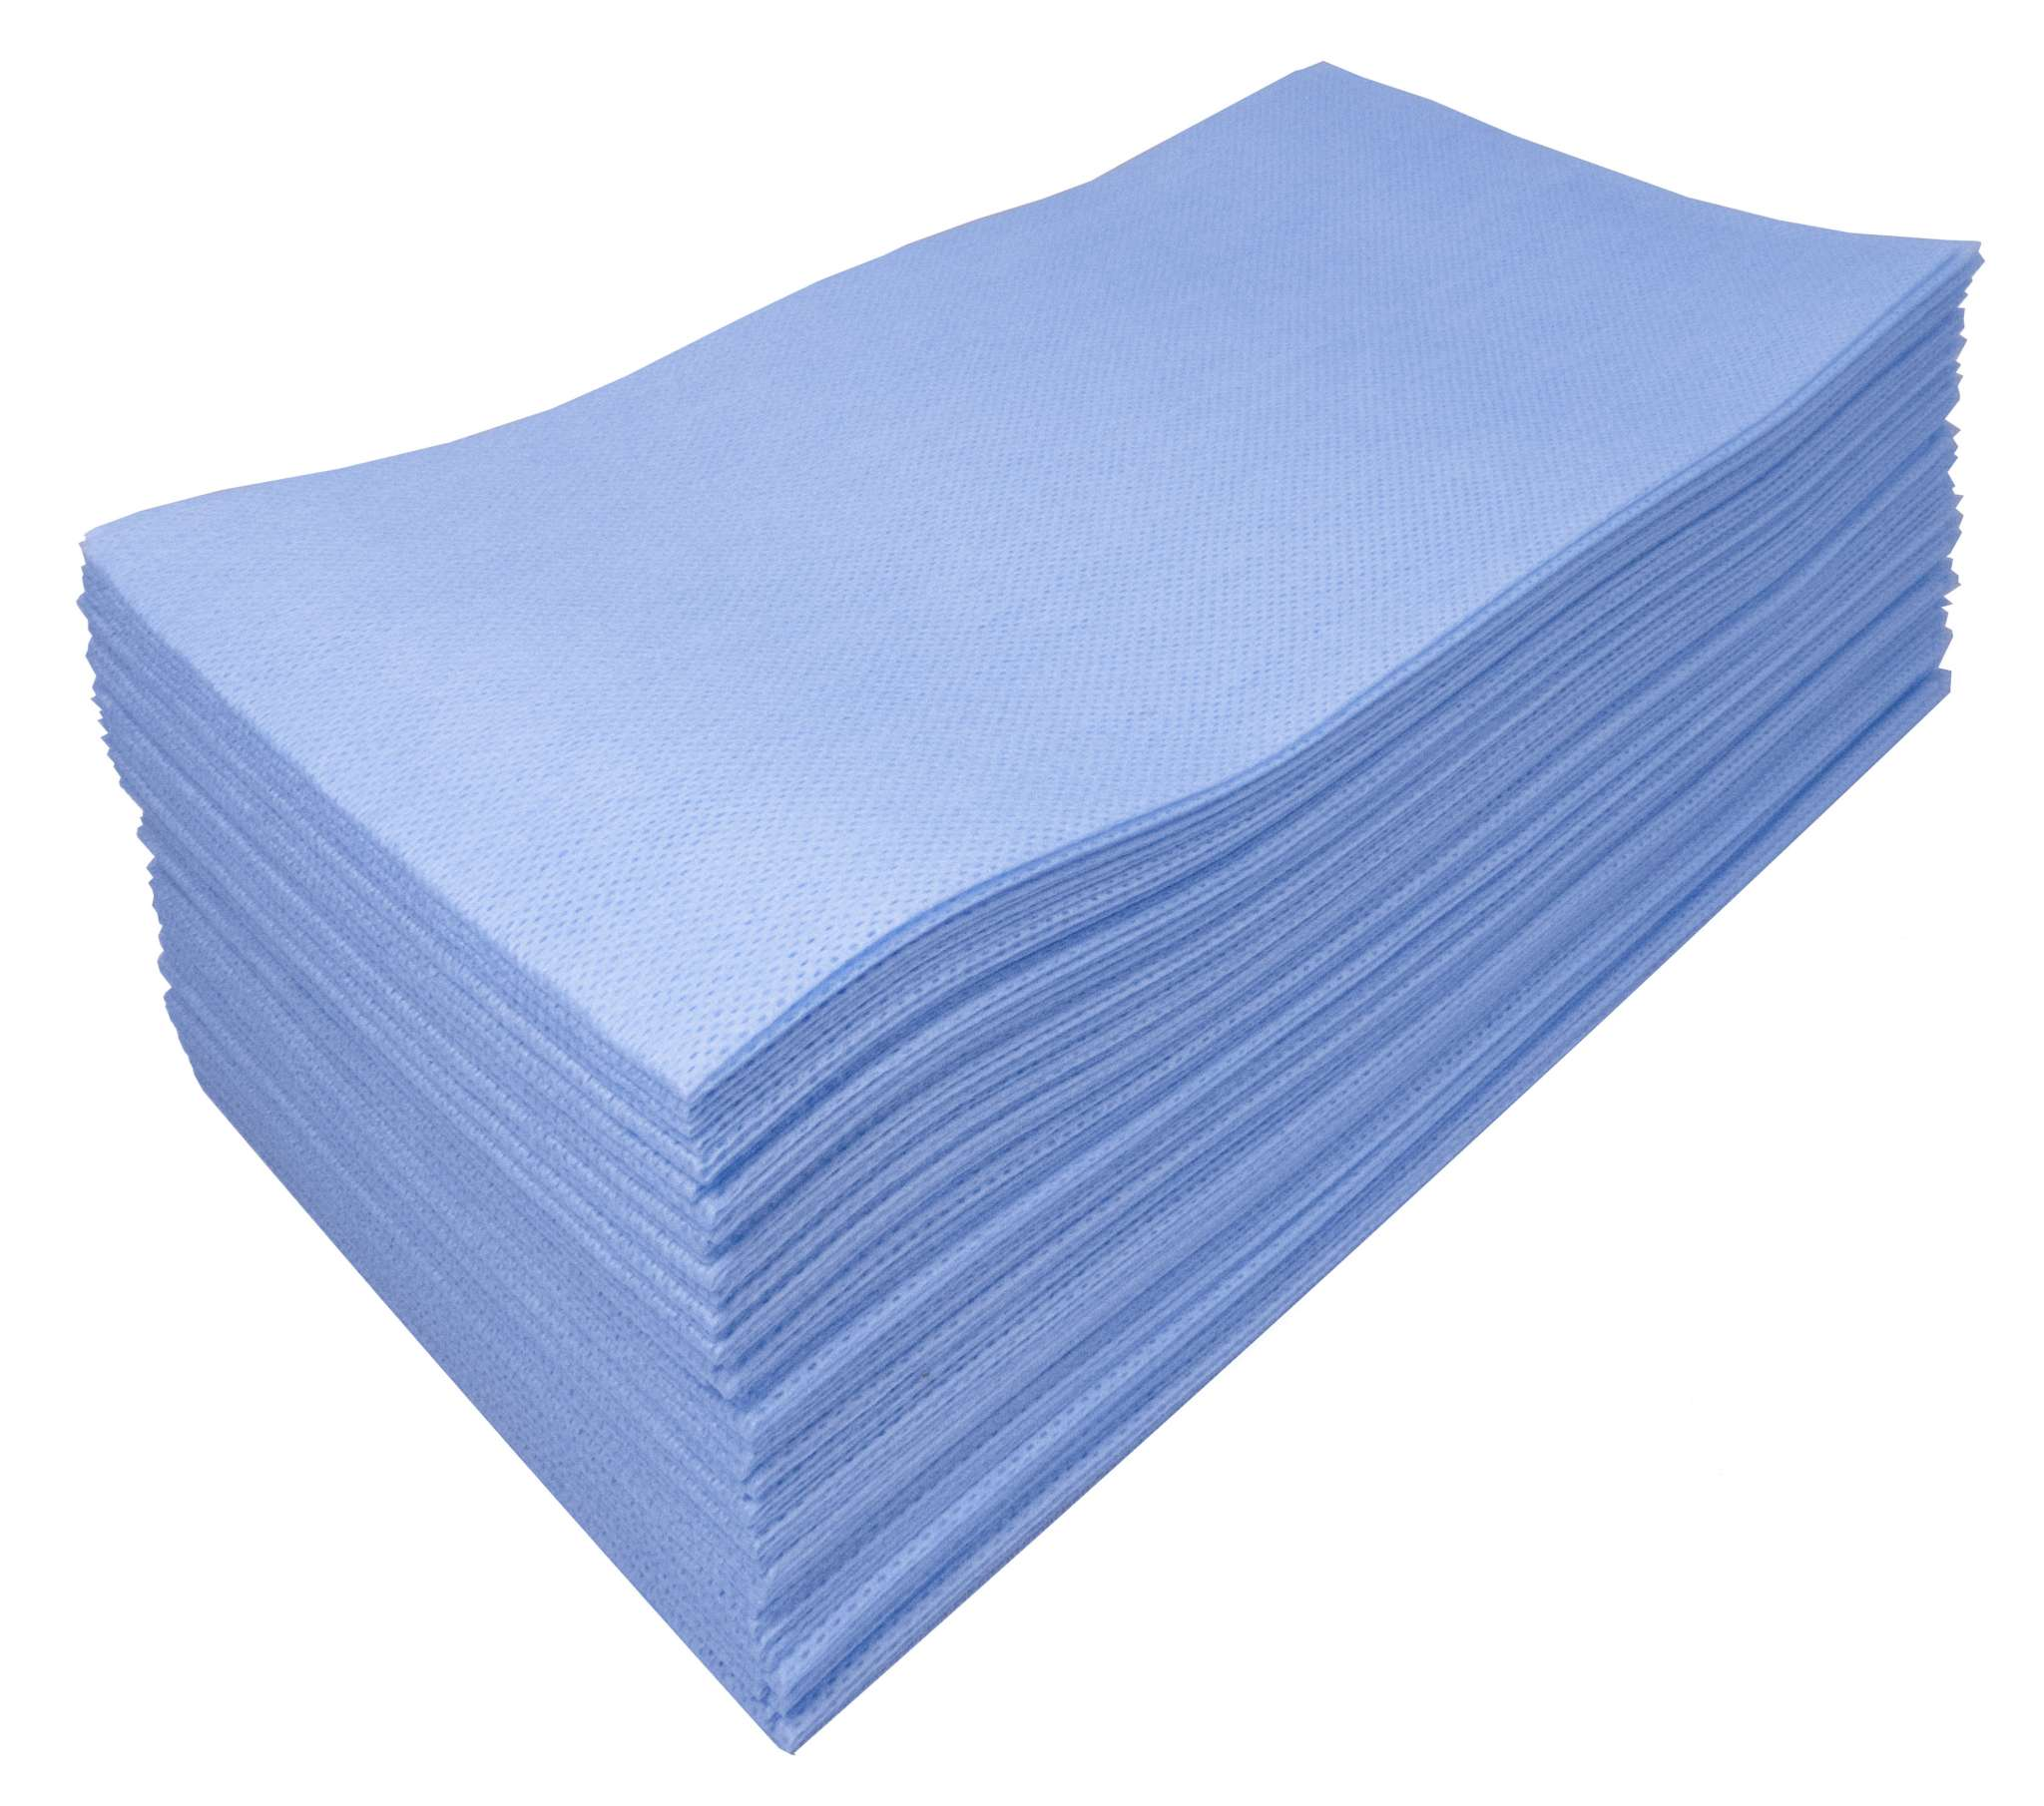 #05905 Foodservice Towel